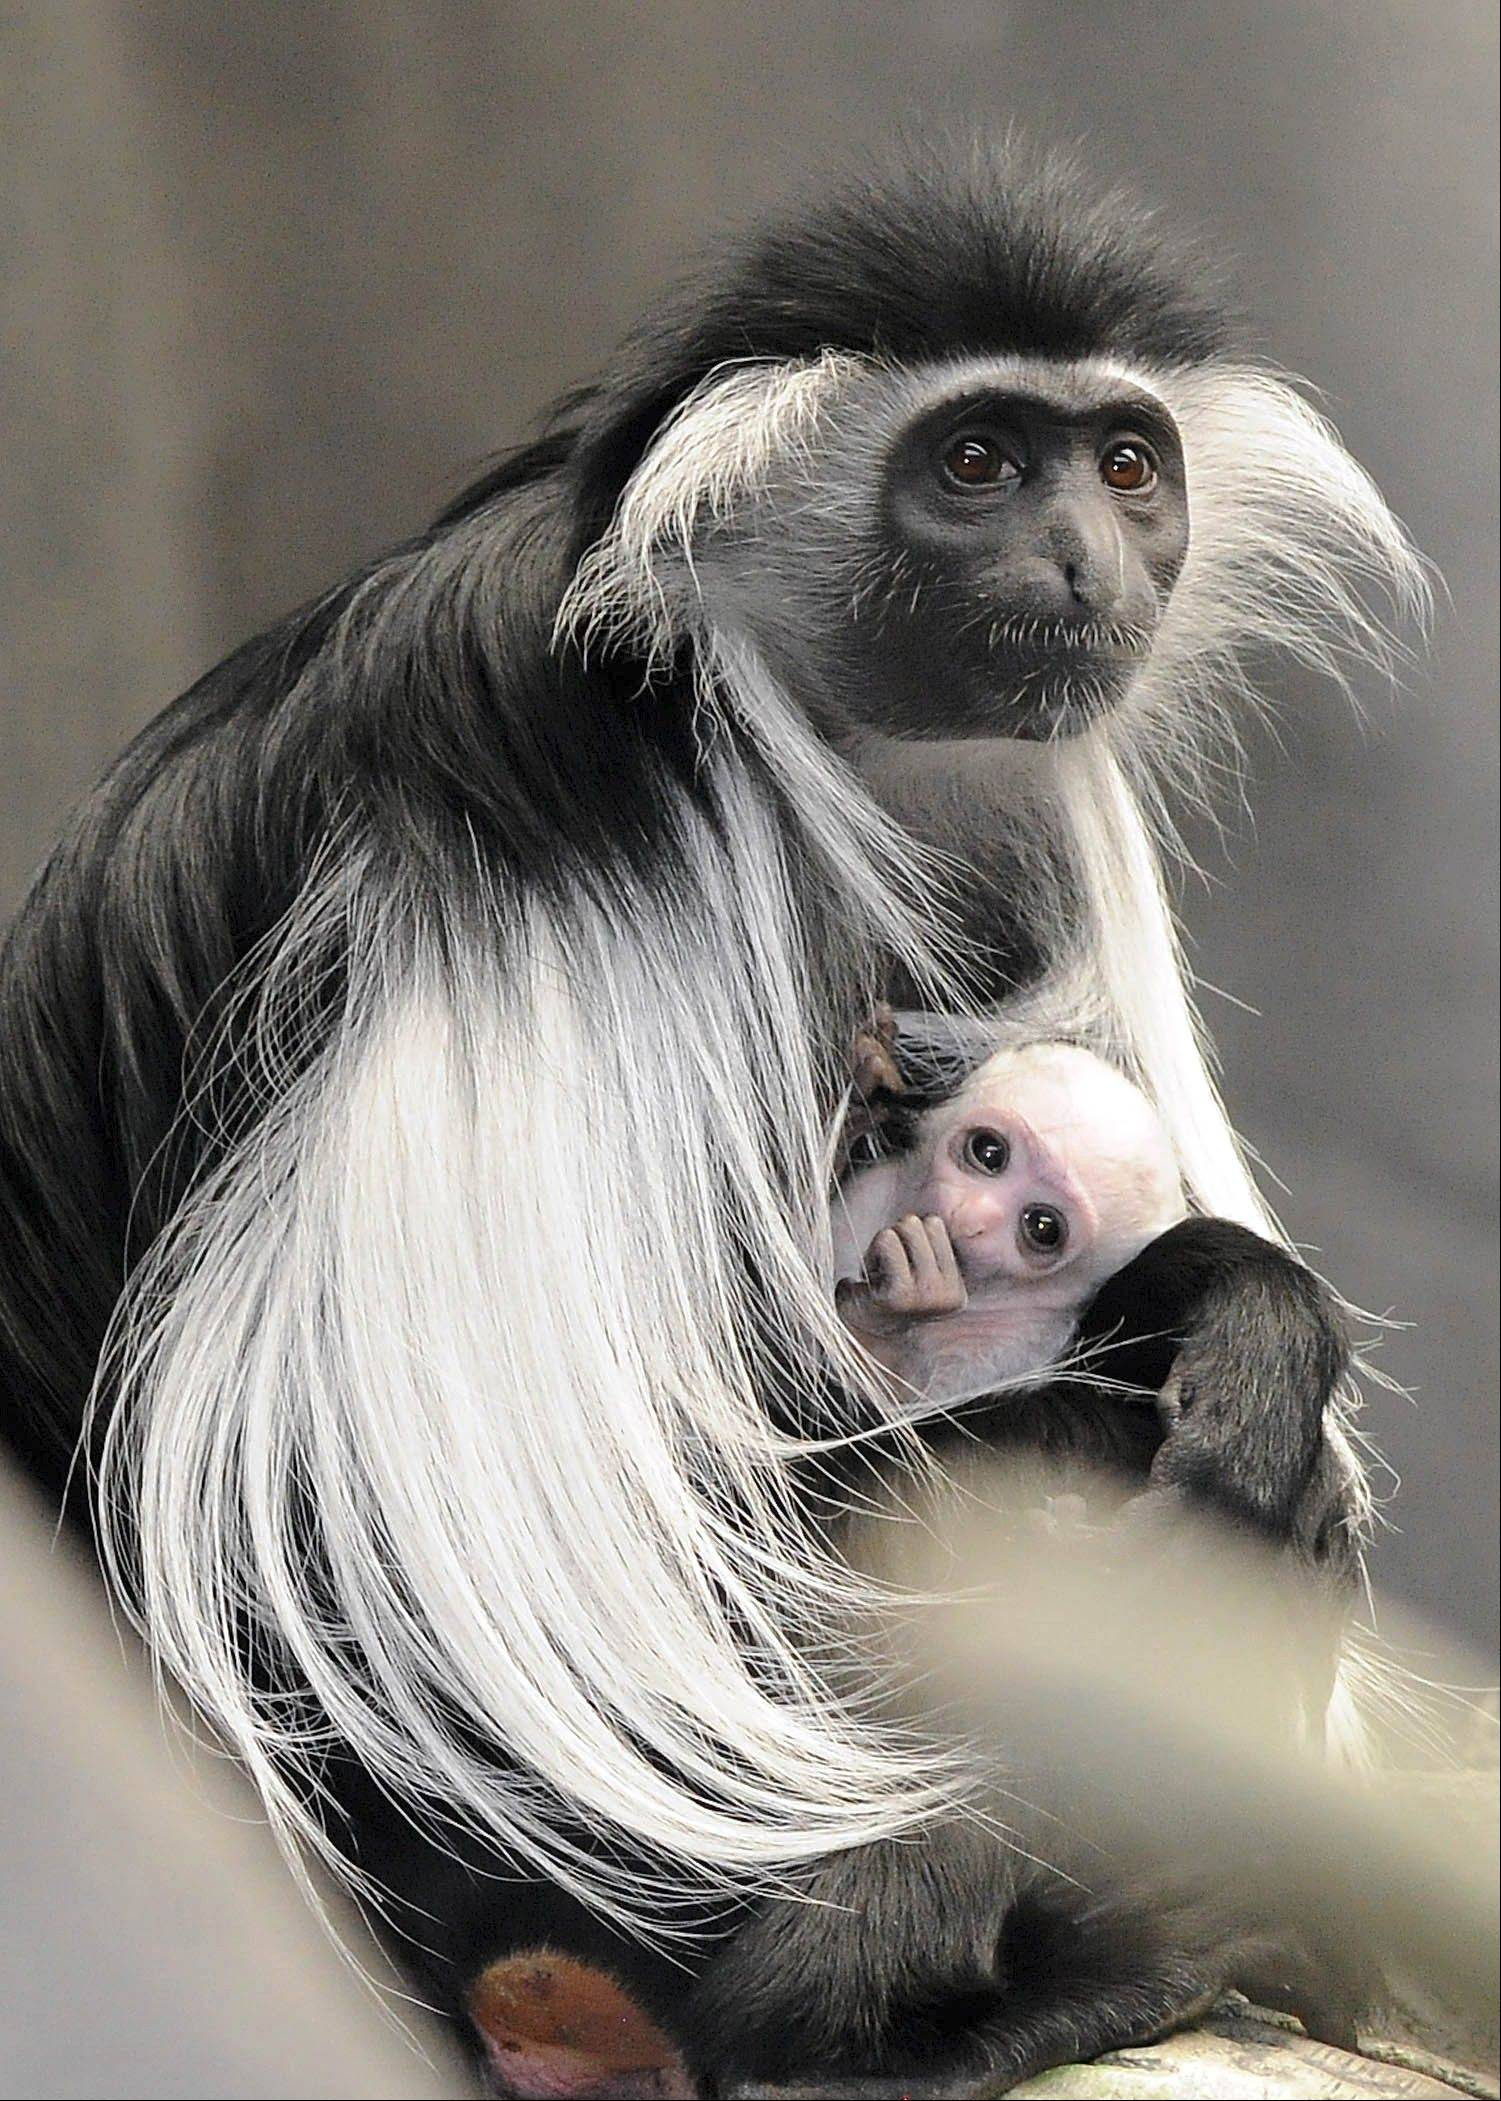 The Chicago Zoological Society says an Angolan colobus monkey was born at the suburban Chicago zoo on March 9 and now can be seen daily in the Tropic World: Africa exhibit.